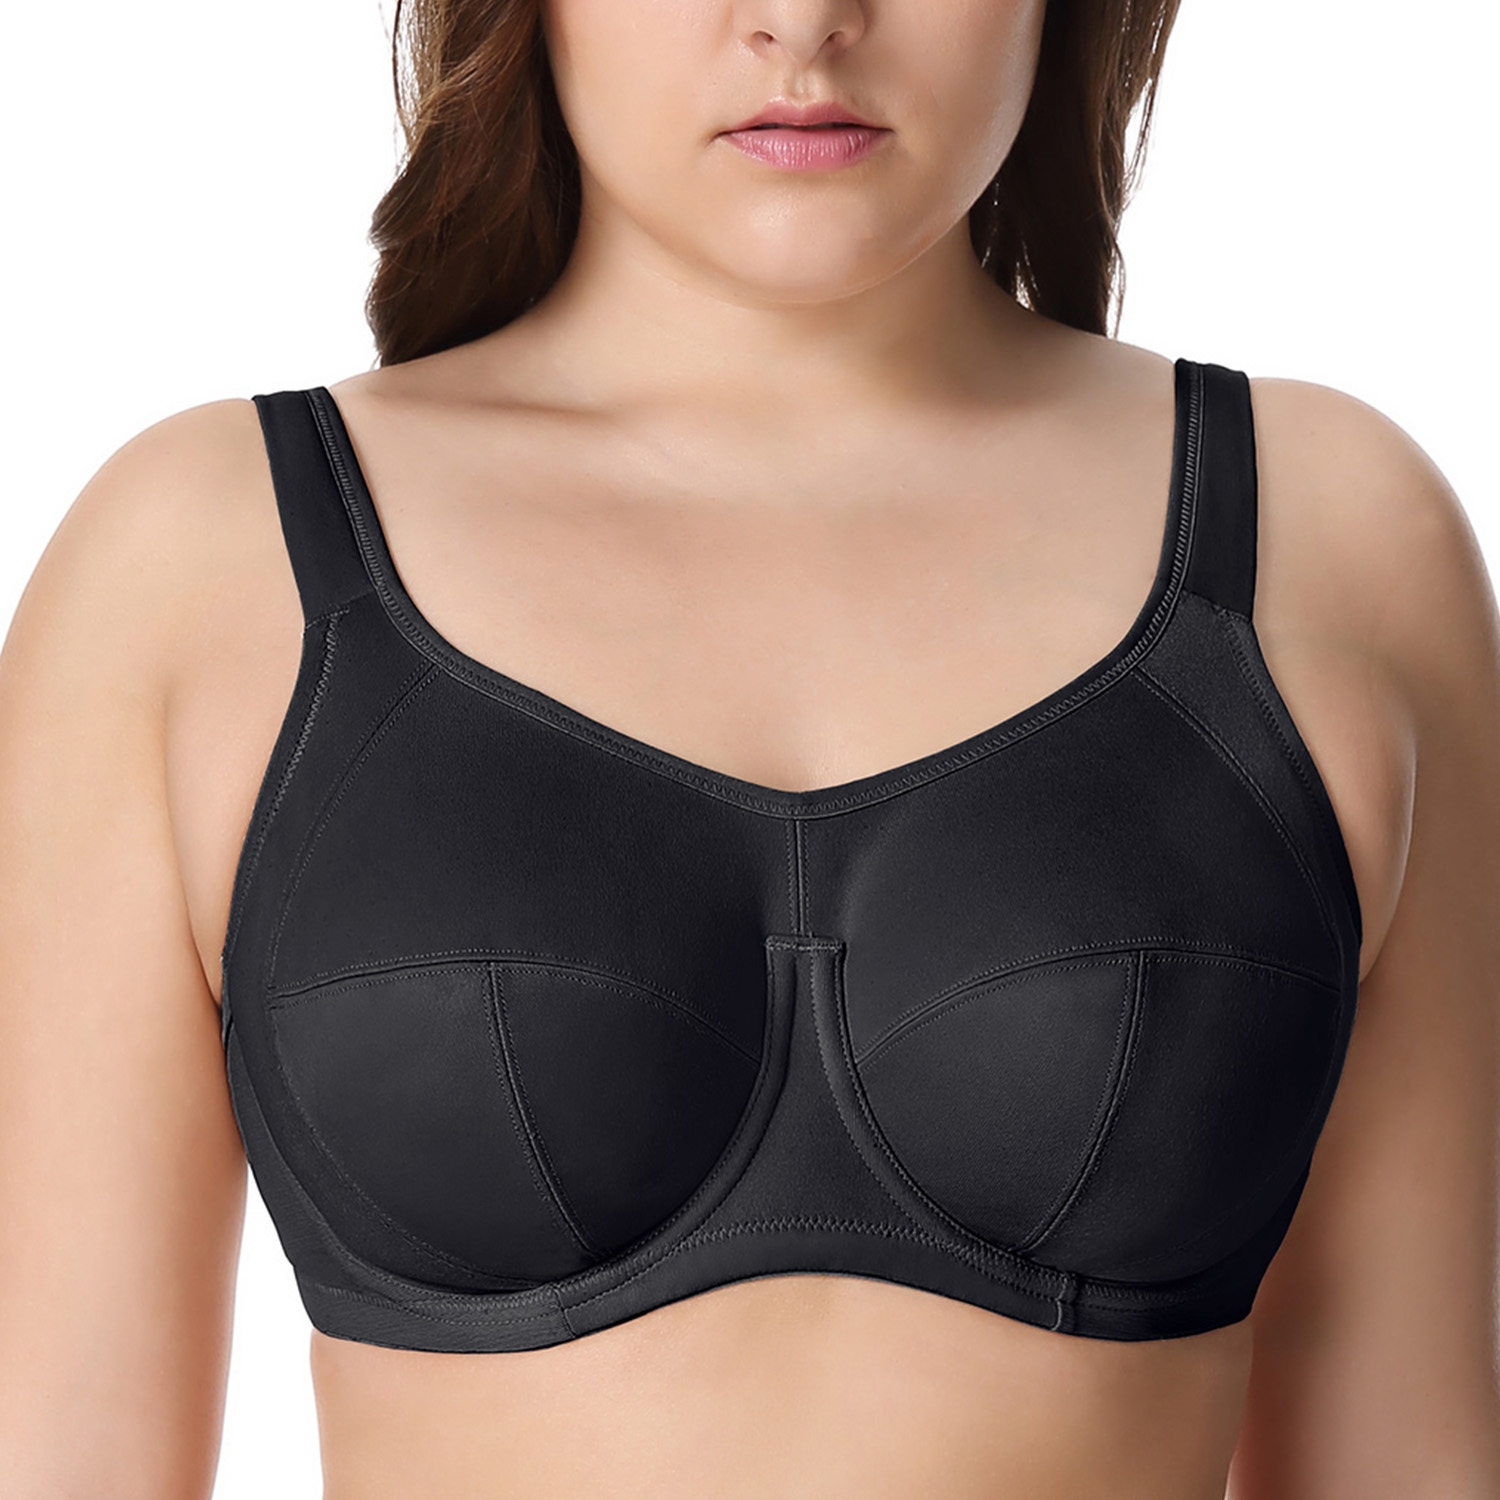 Women's X-back Full Support Bounce Control Plus Size Underwire Sports Bra